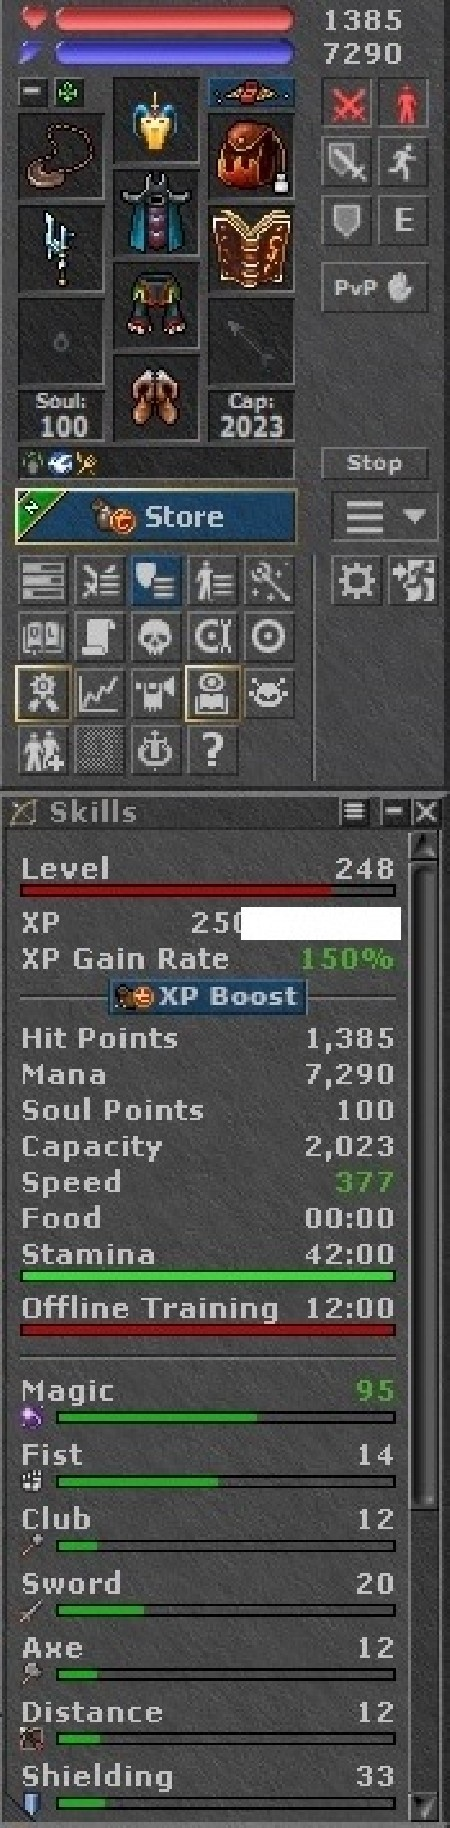 Tibia Character Open-PvP ~248 ED